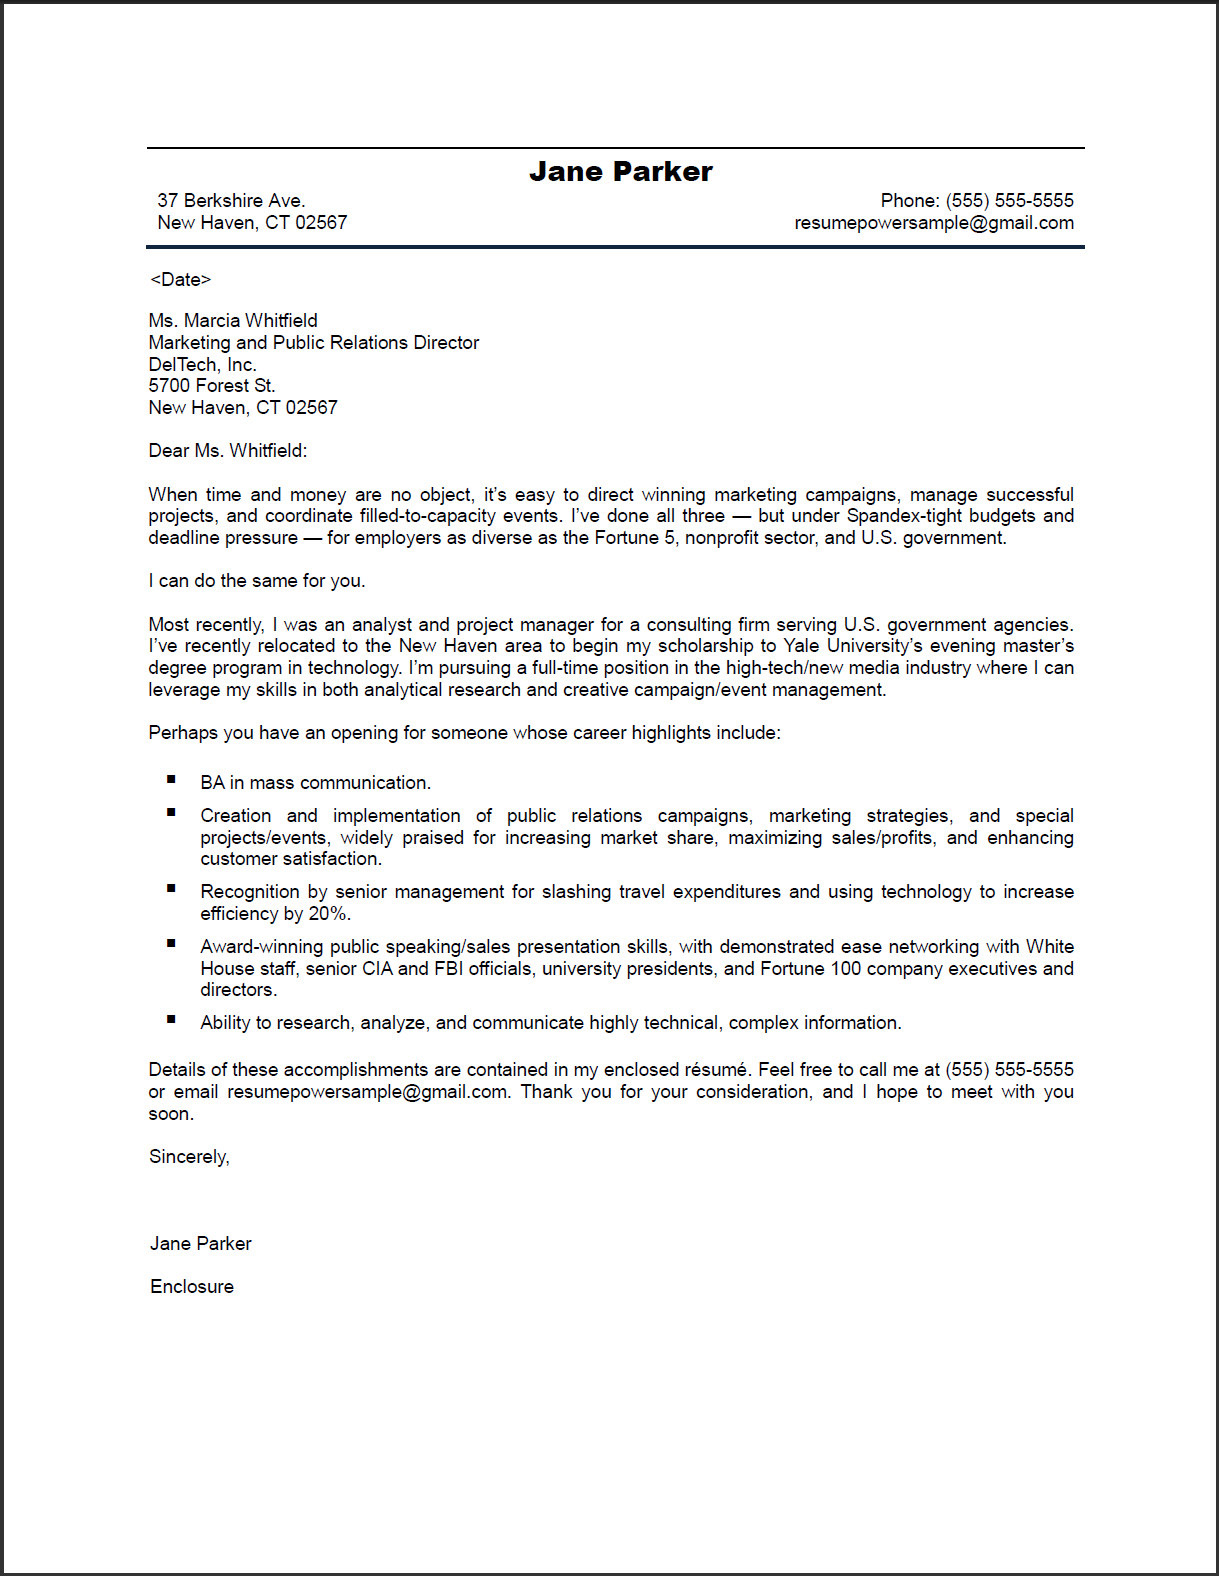 Covering Letter Format For Resume Marketing 43resume 43cover 43letter 43samples